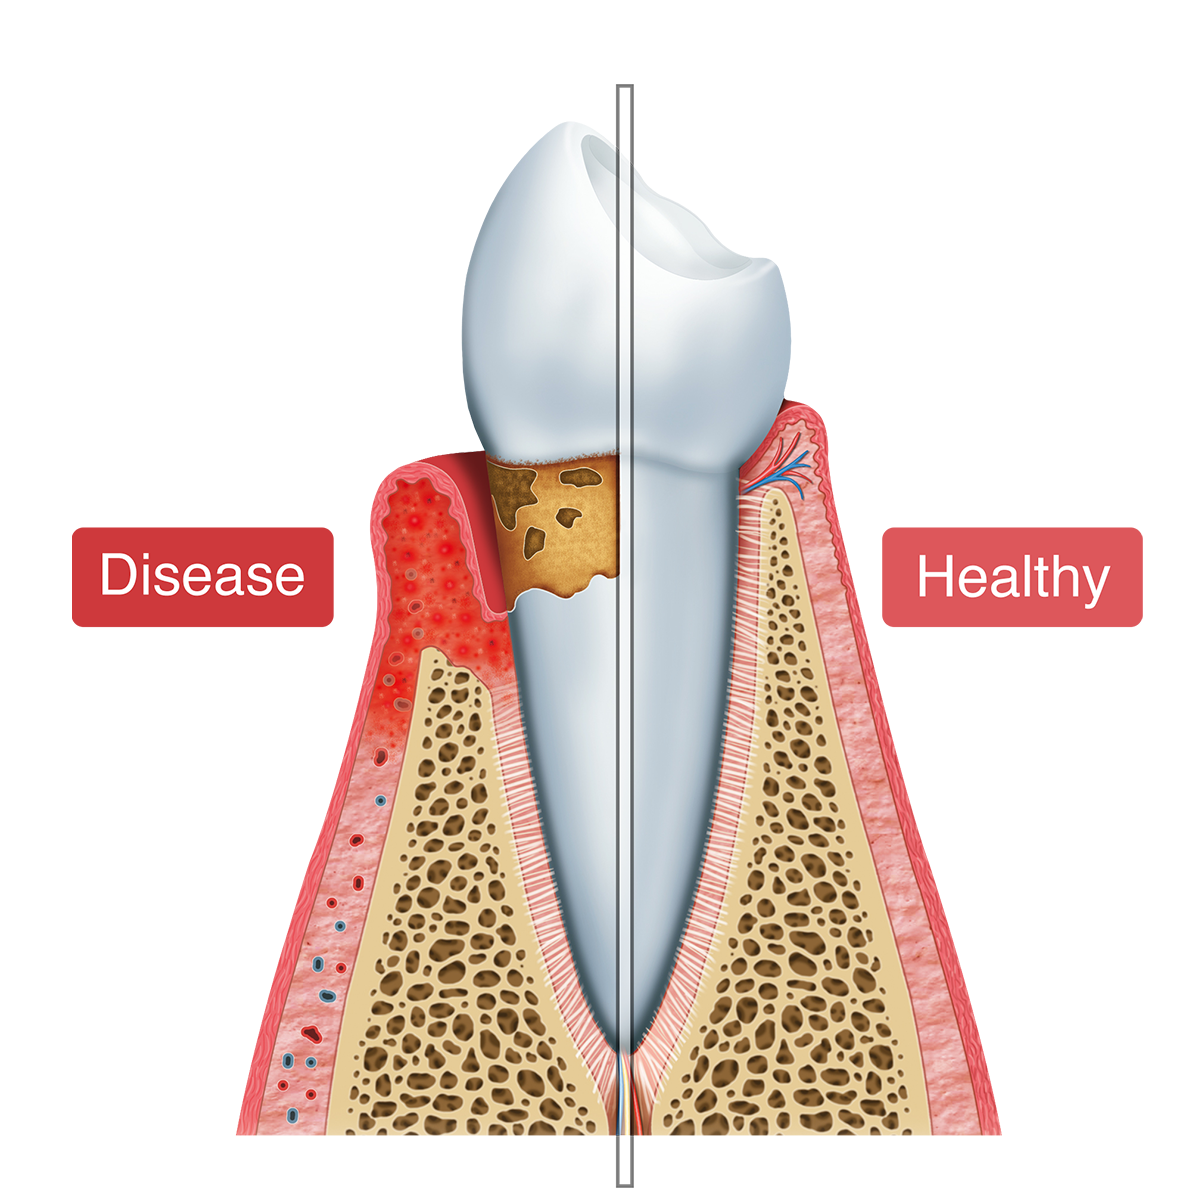 Graphic of a diseased tooth and a healthy tooth